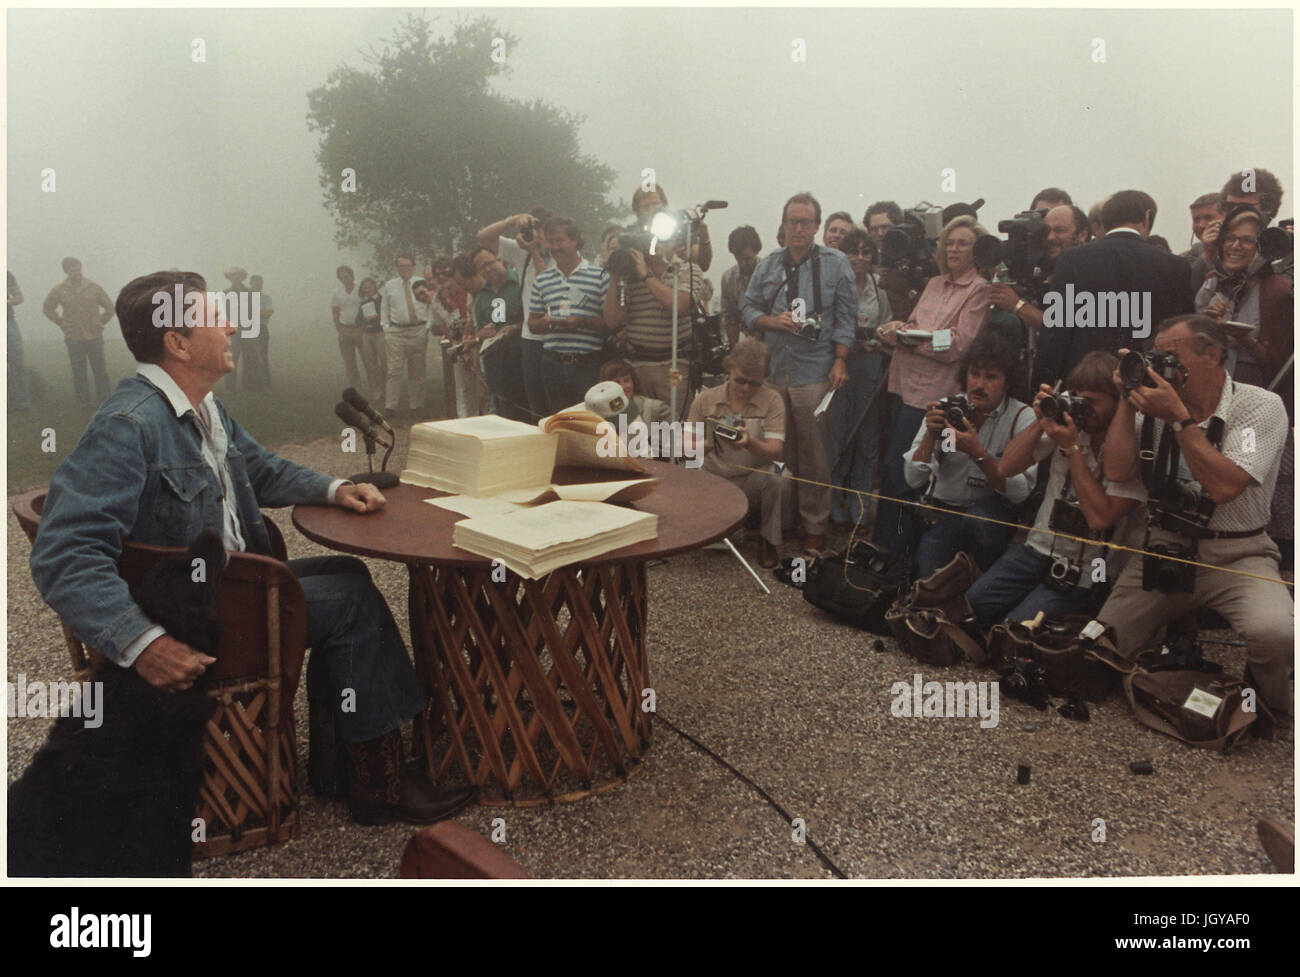 President Reagan meeting with the Press after signing the Tax Reconciliation Bill, Rancho Del Cielo - Stock Image